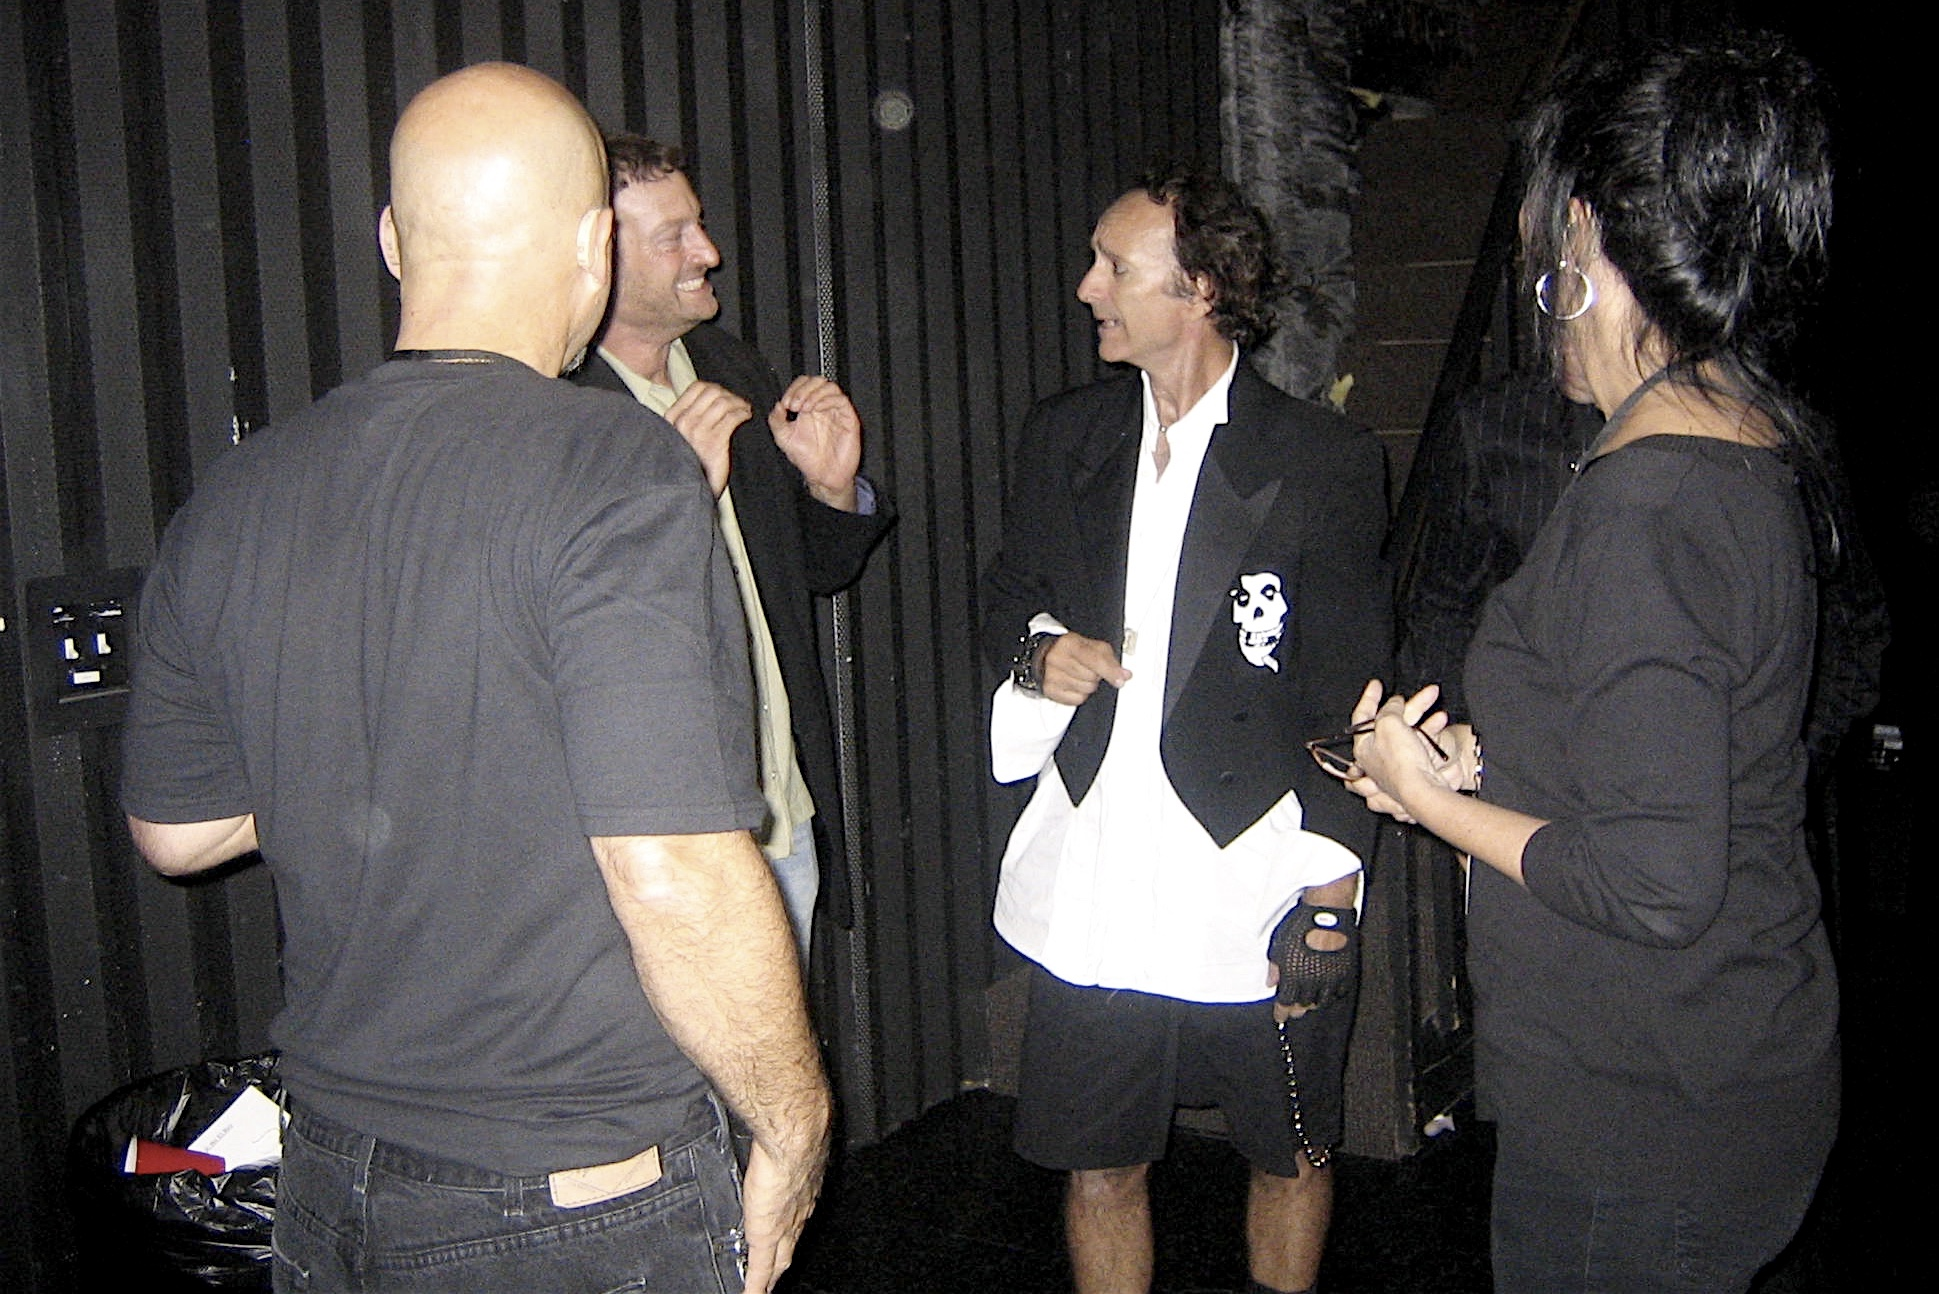 Actor Troy Kotsur with Beethoven's Nightmare members Steve Longo, Ed Chevy, and choreographer Rita Corey backstage after GLAD & Sprint Relay's 2007 concert  Beethoven's Nightmare Live At The El Rey , produced by Bob Hiltermann, John Drouillard, and Natalie Drouillard.  Photo by Natalie Drouillard.